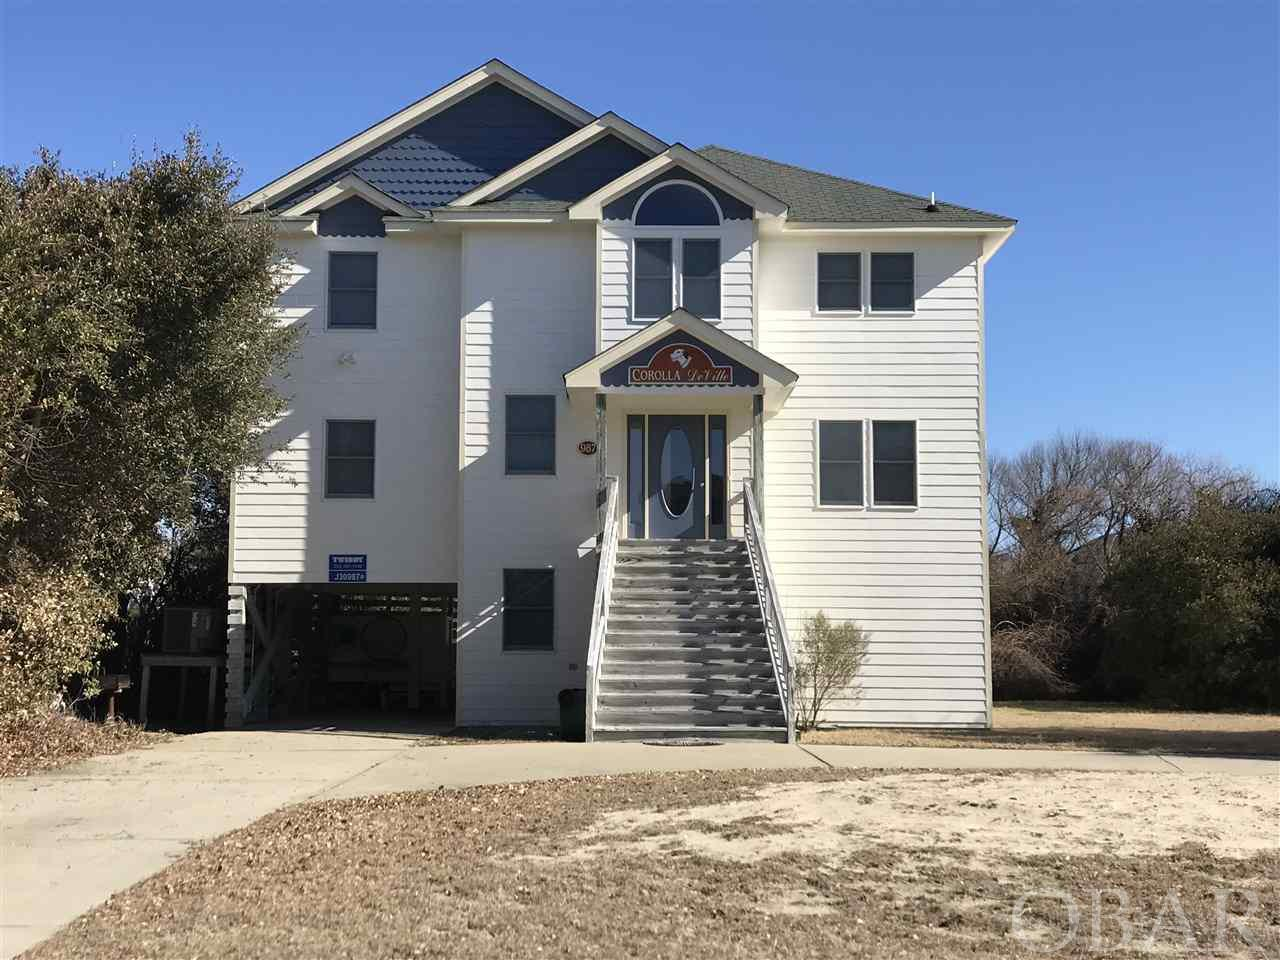 987 Whalehead Drive,Corolla,NC 27927,6 Bedrooms Bedrooms,5 BathroomsBathrooms,Residential,Whalehead Drive,99025